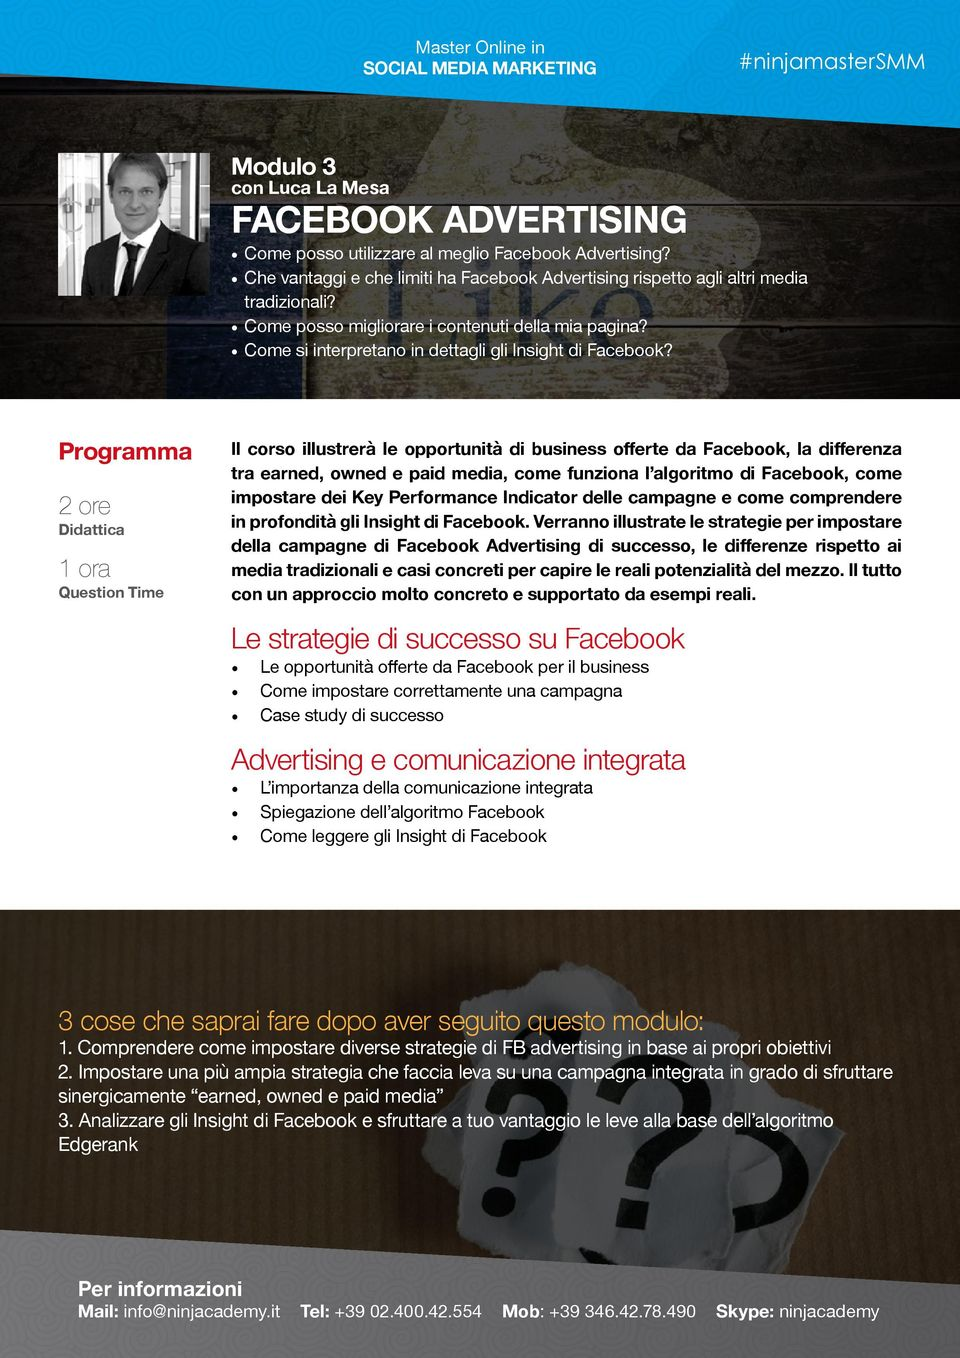 2 ore 1 ora Question Time Il corso illustrerà le opportunità di business offerte da Facebook, la differenza tra earned, owned e paid media, come funziona l algoritmo di Facebook, come impostare dei